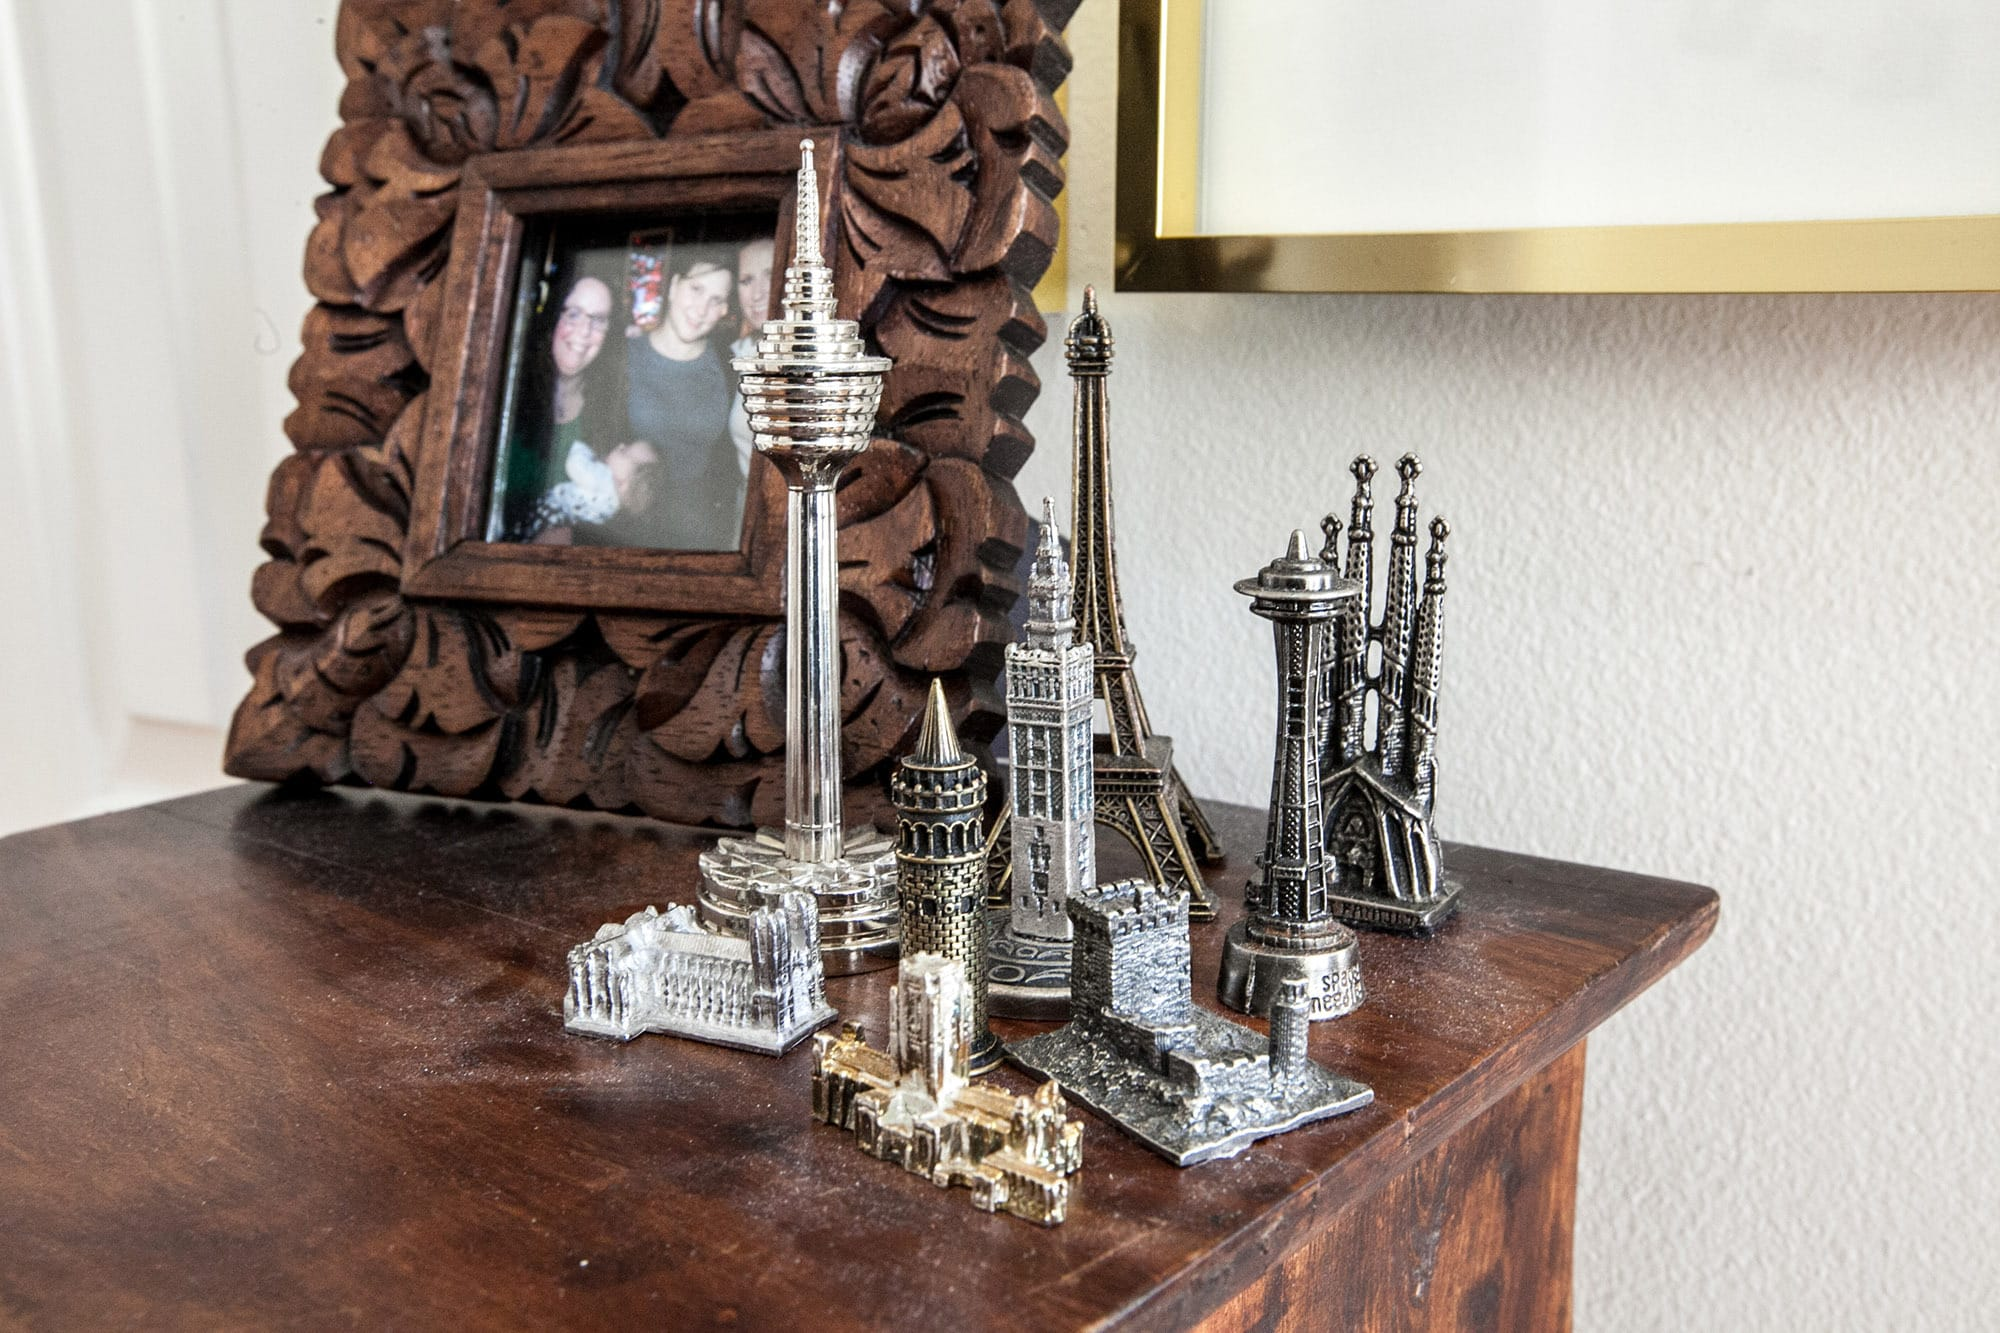 Miniature metal souvenir buildings from around the world.